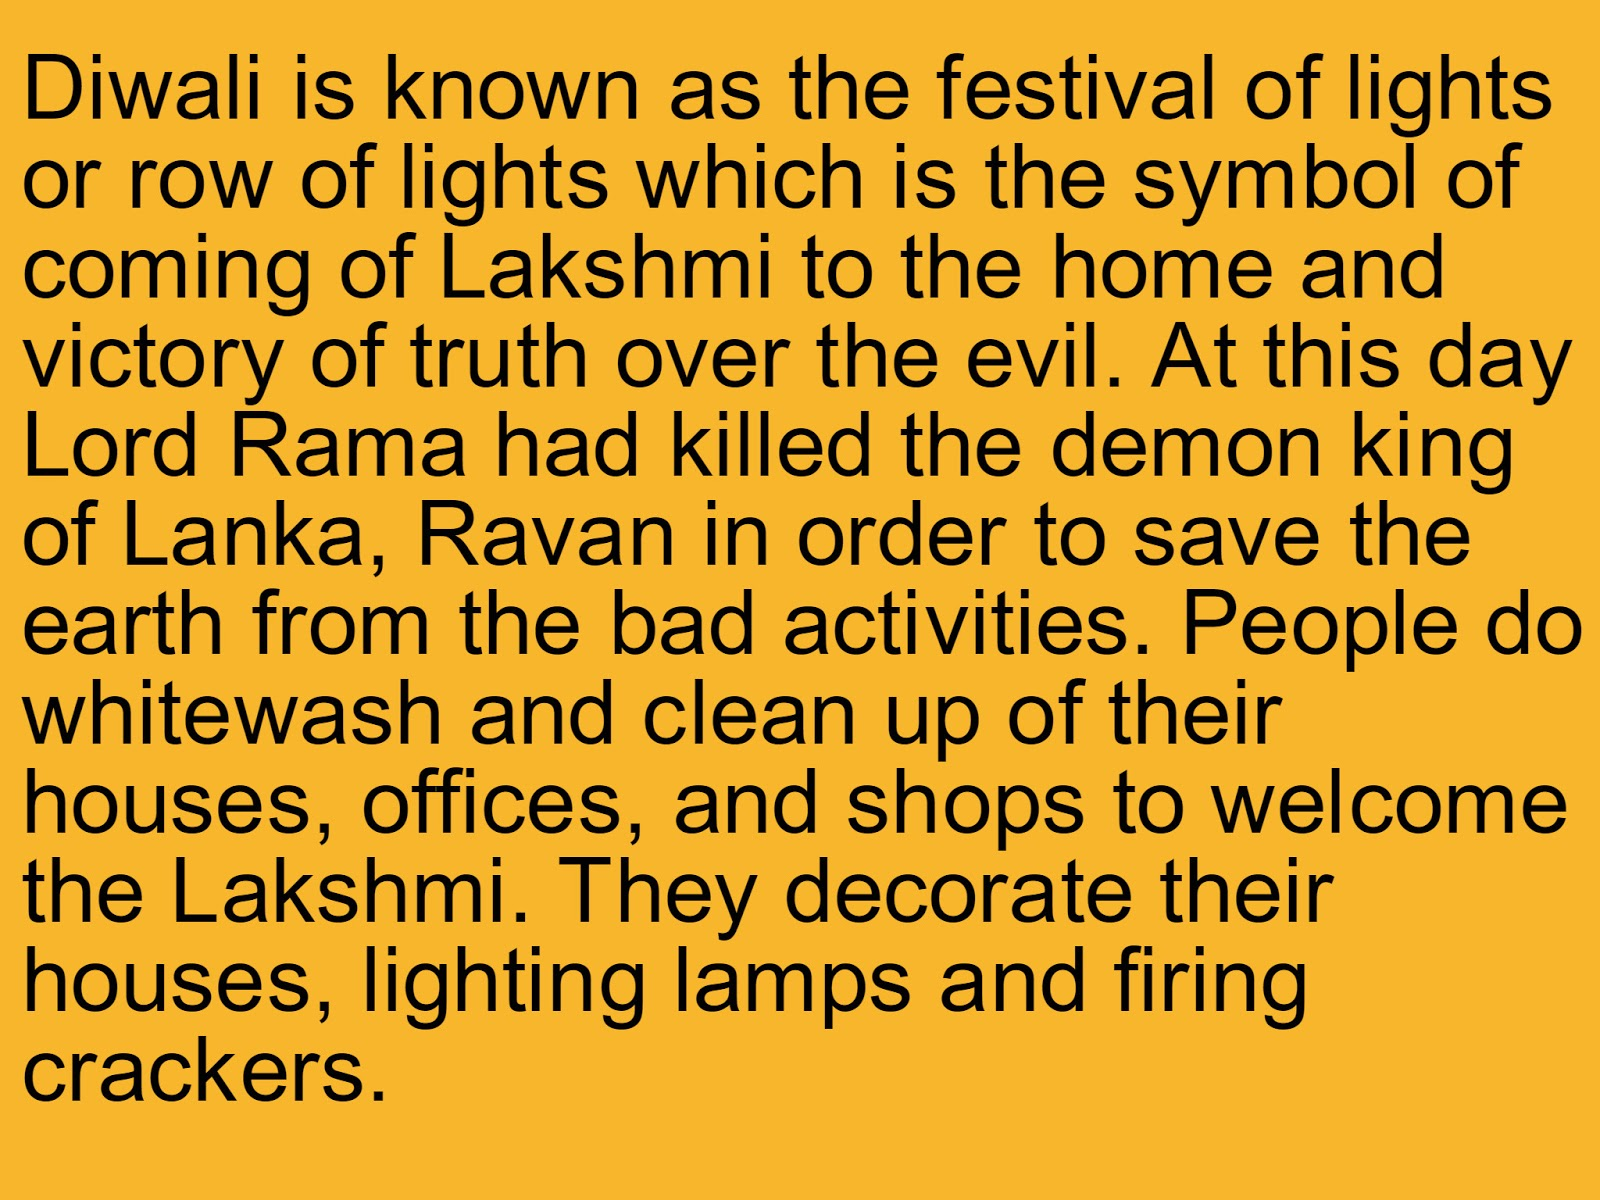 Short essay on diwali celebration without pollution images